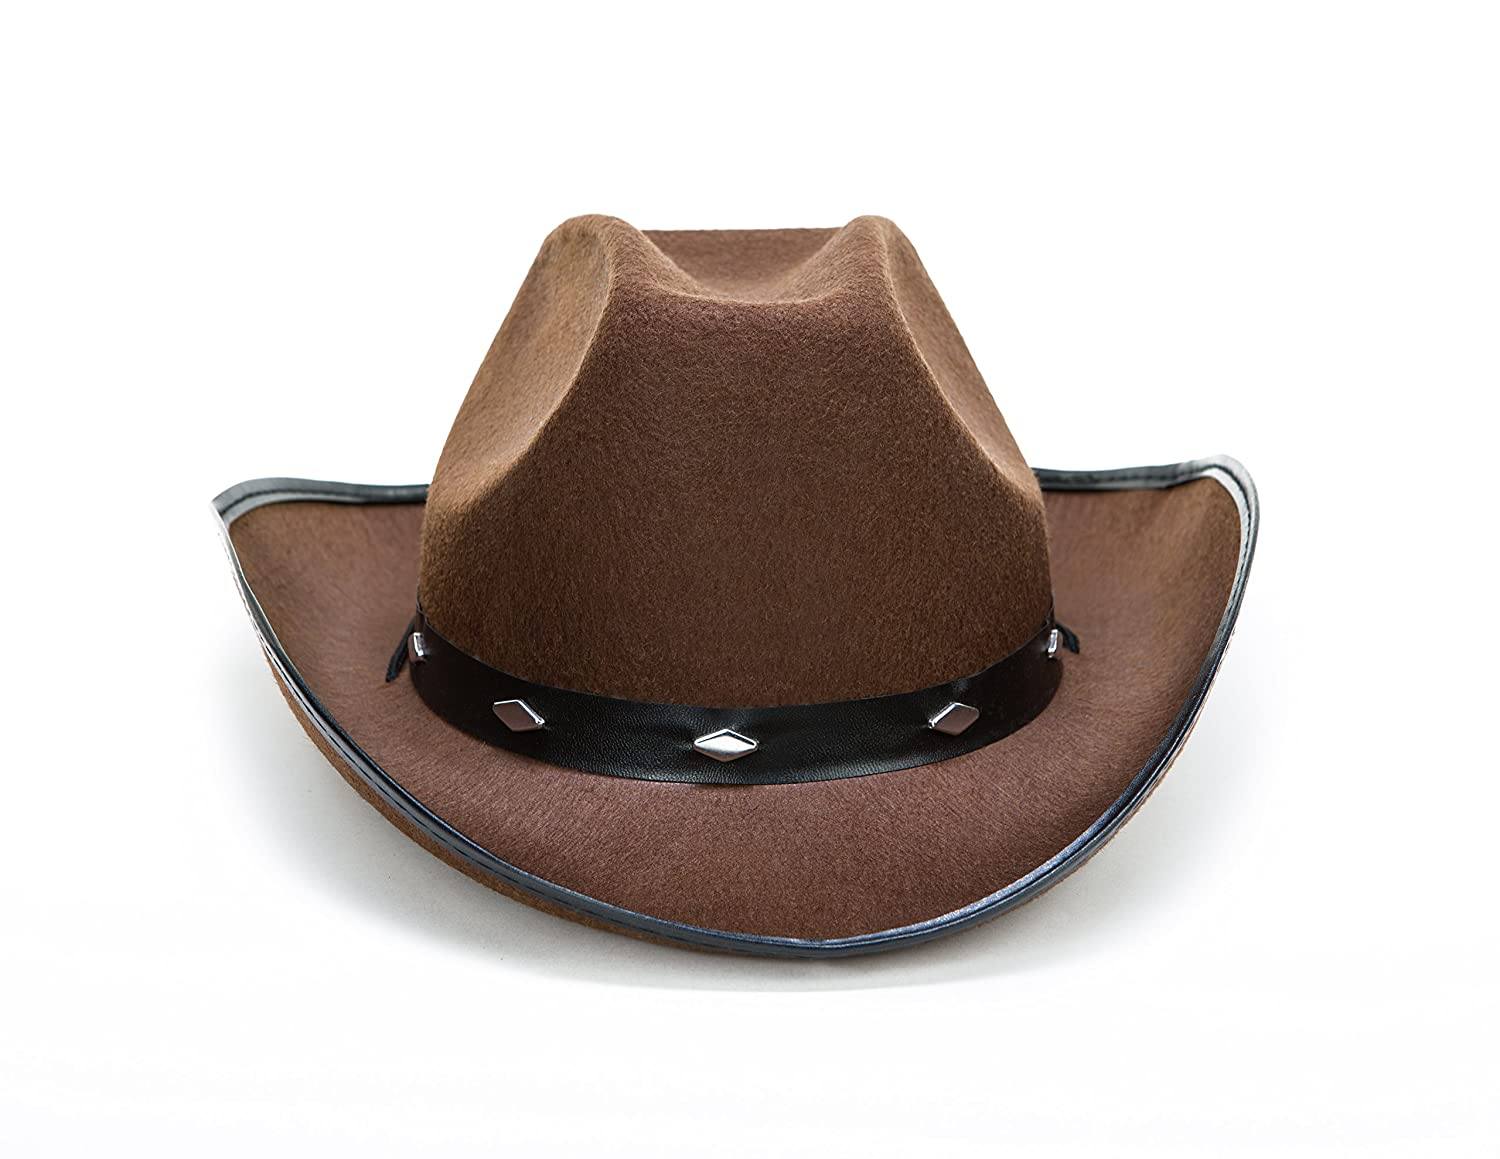 343dbf0f4822a Amazon.com  Kangaroo Brown Studded Cowboy Hat  Toys   Games